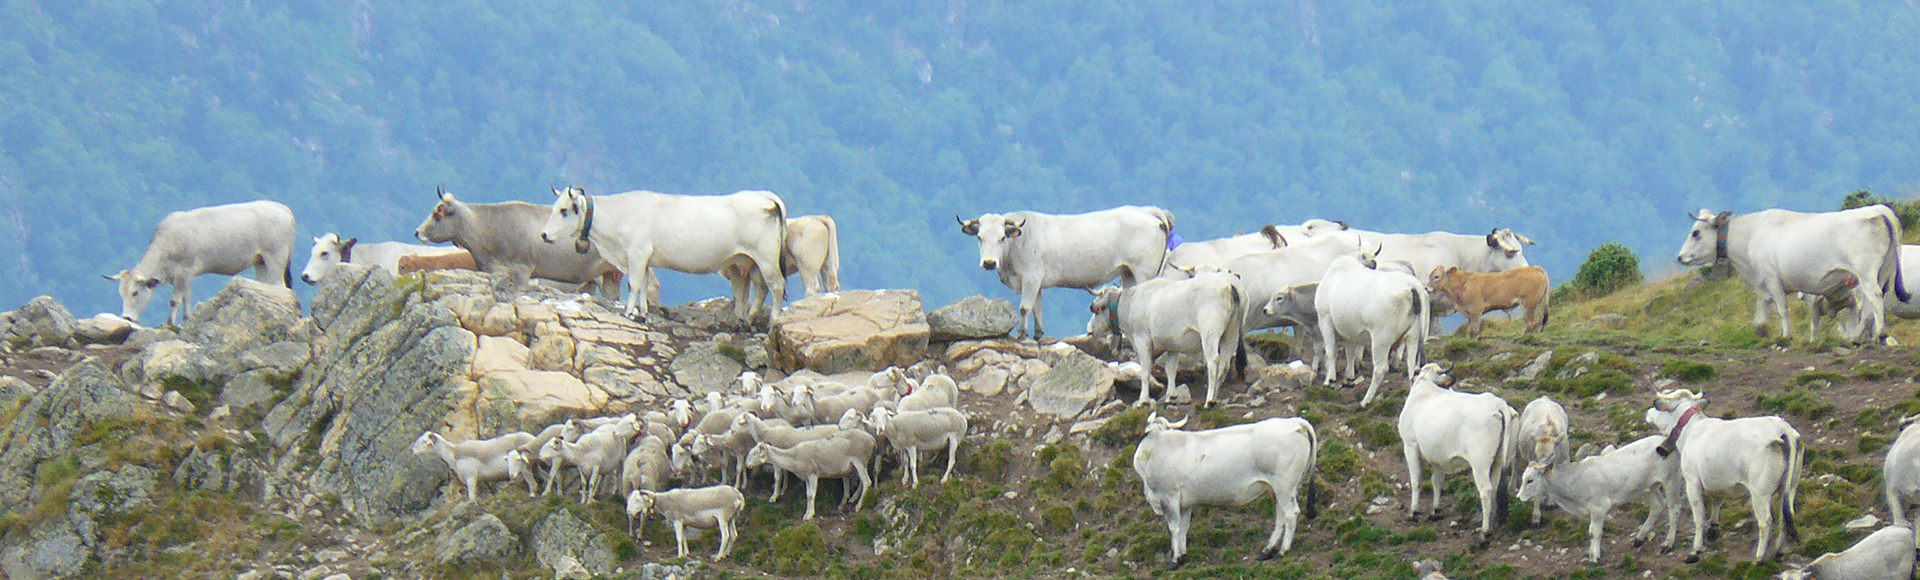 Image of Gascon cows on top of mountain